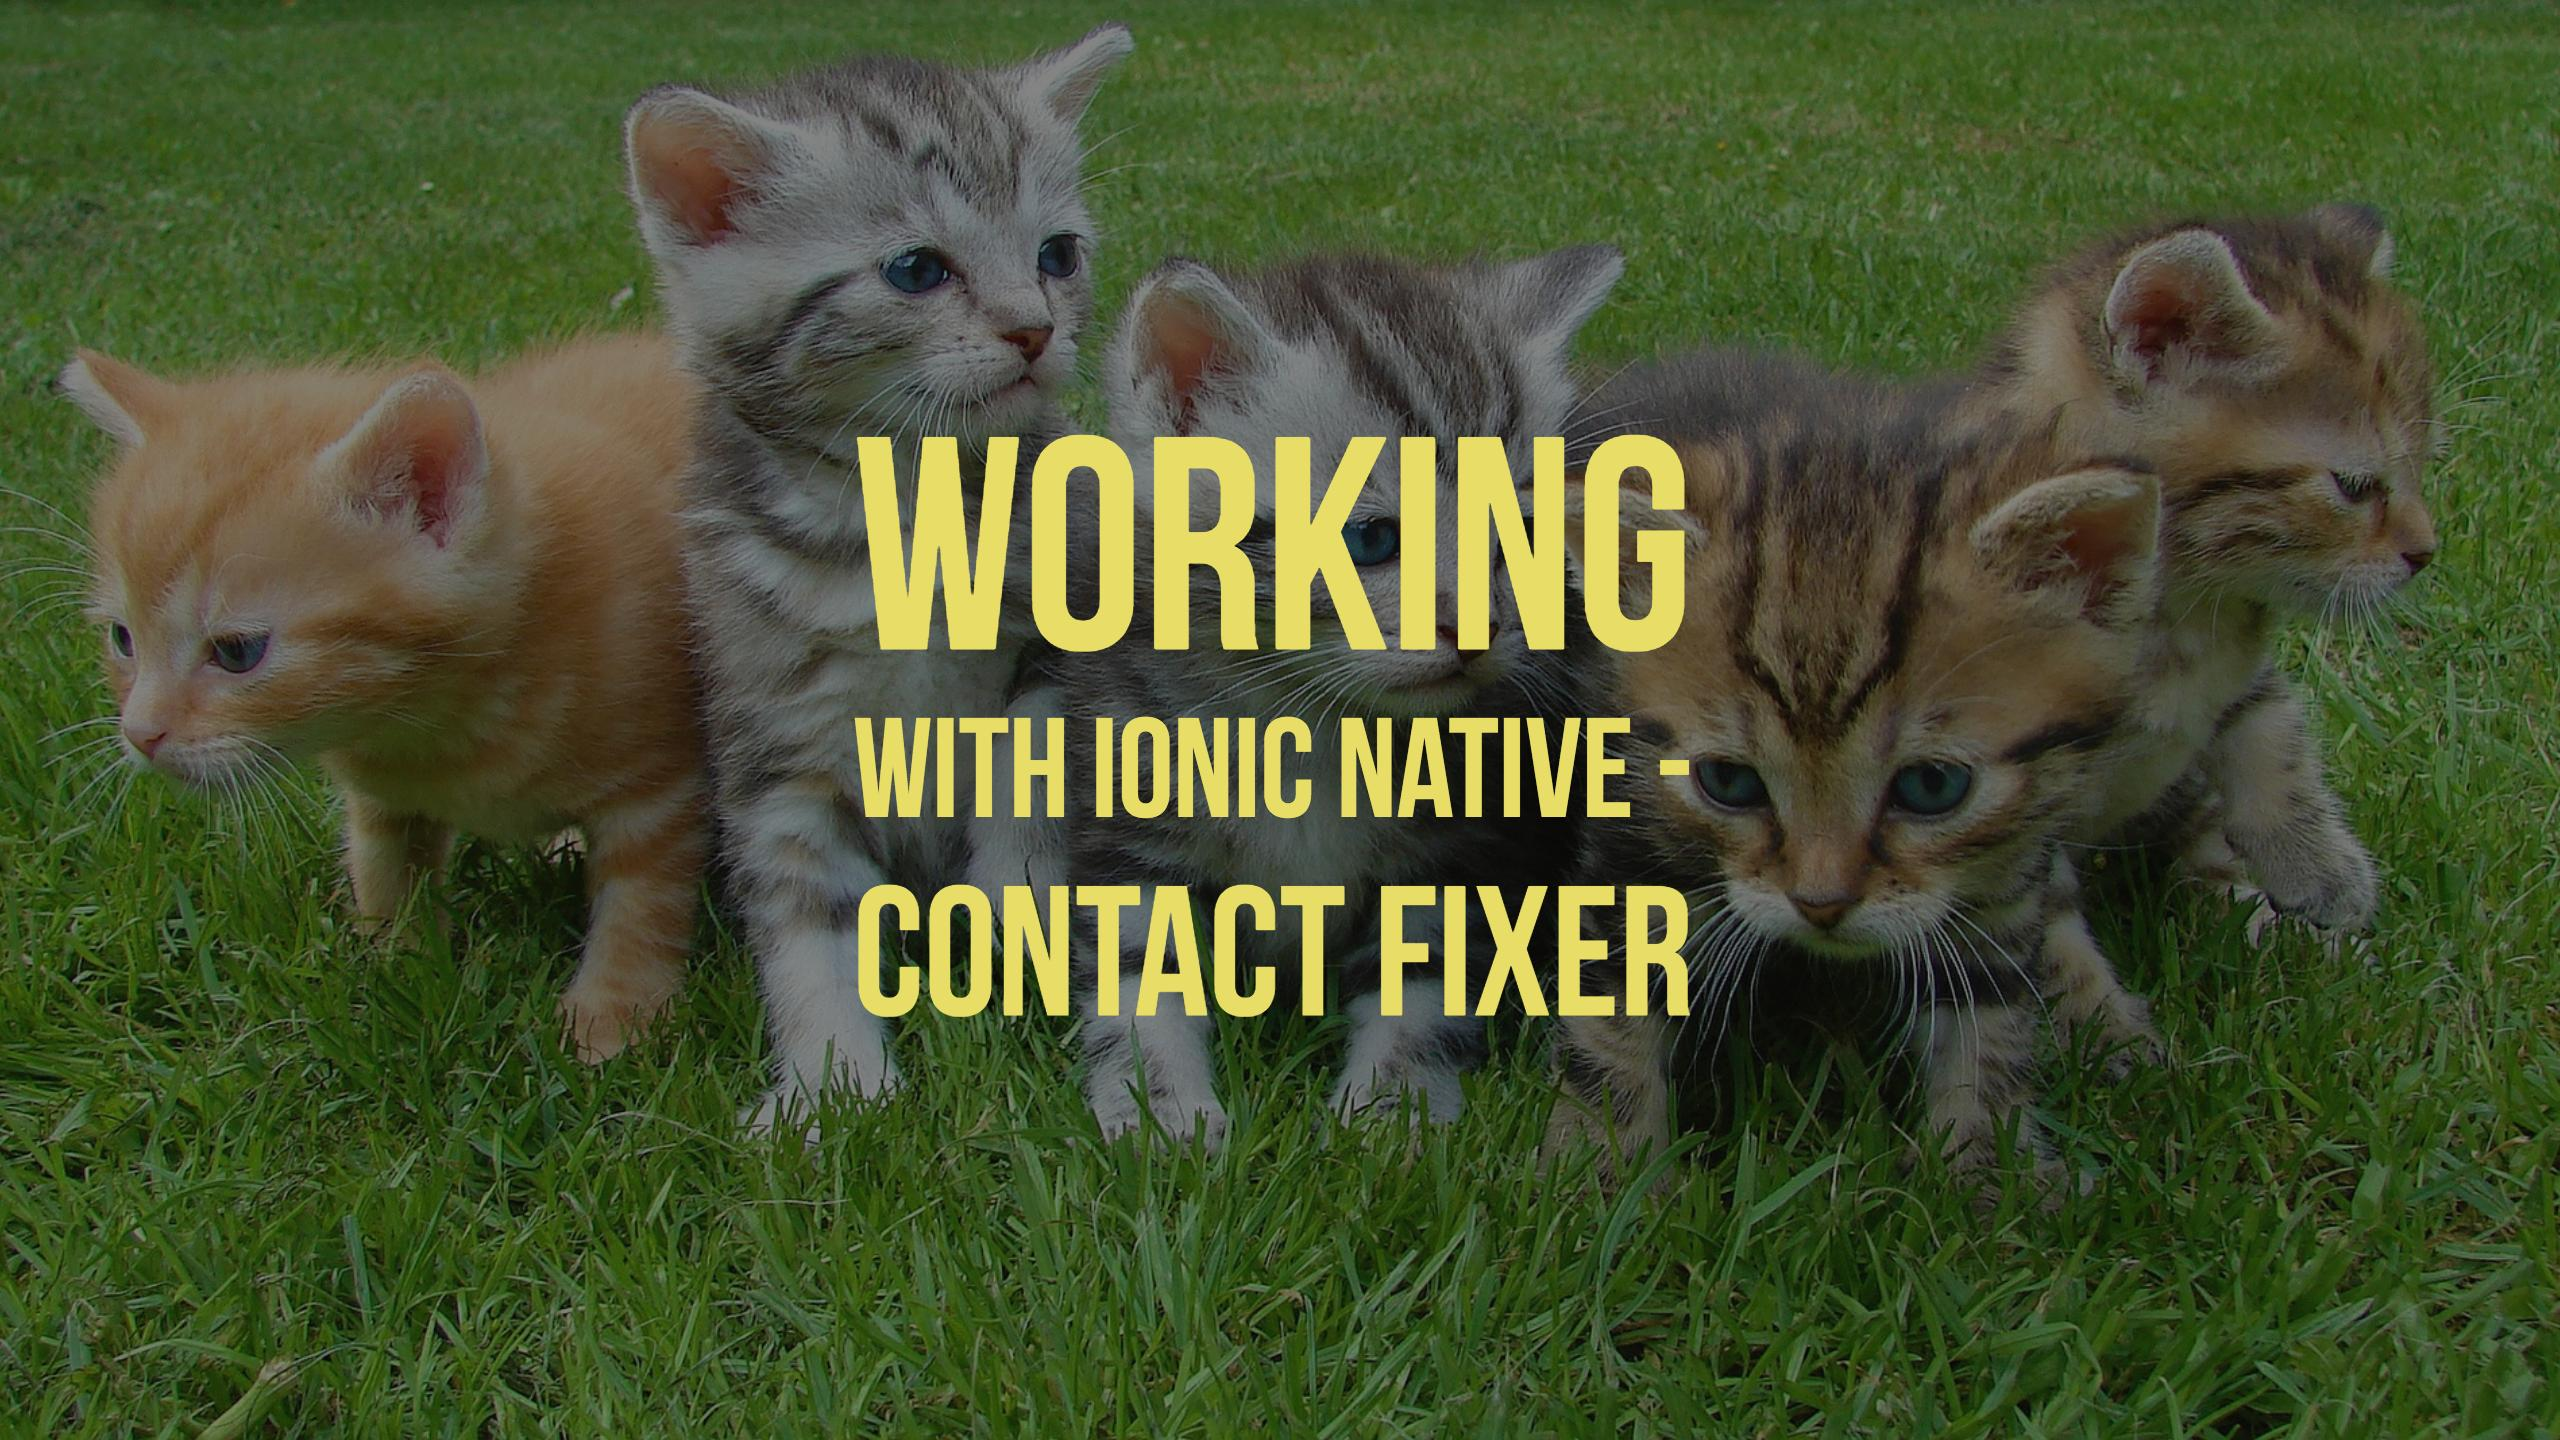 Working with Ionic Native - Contact Fixer